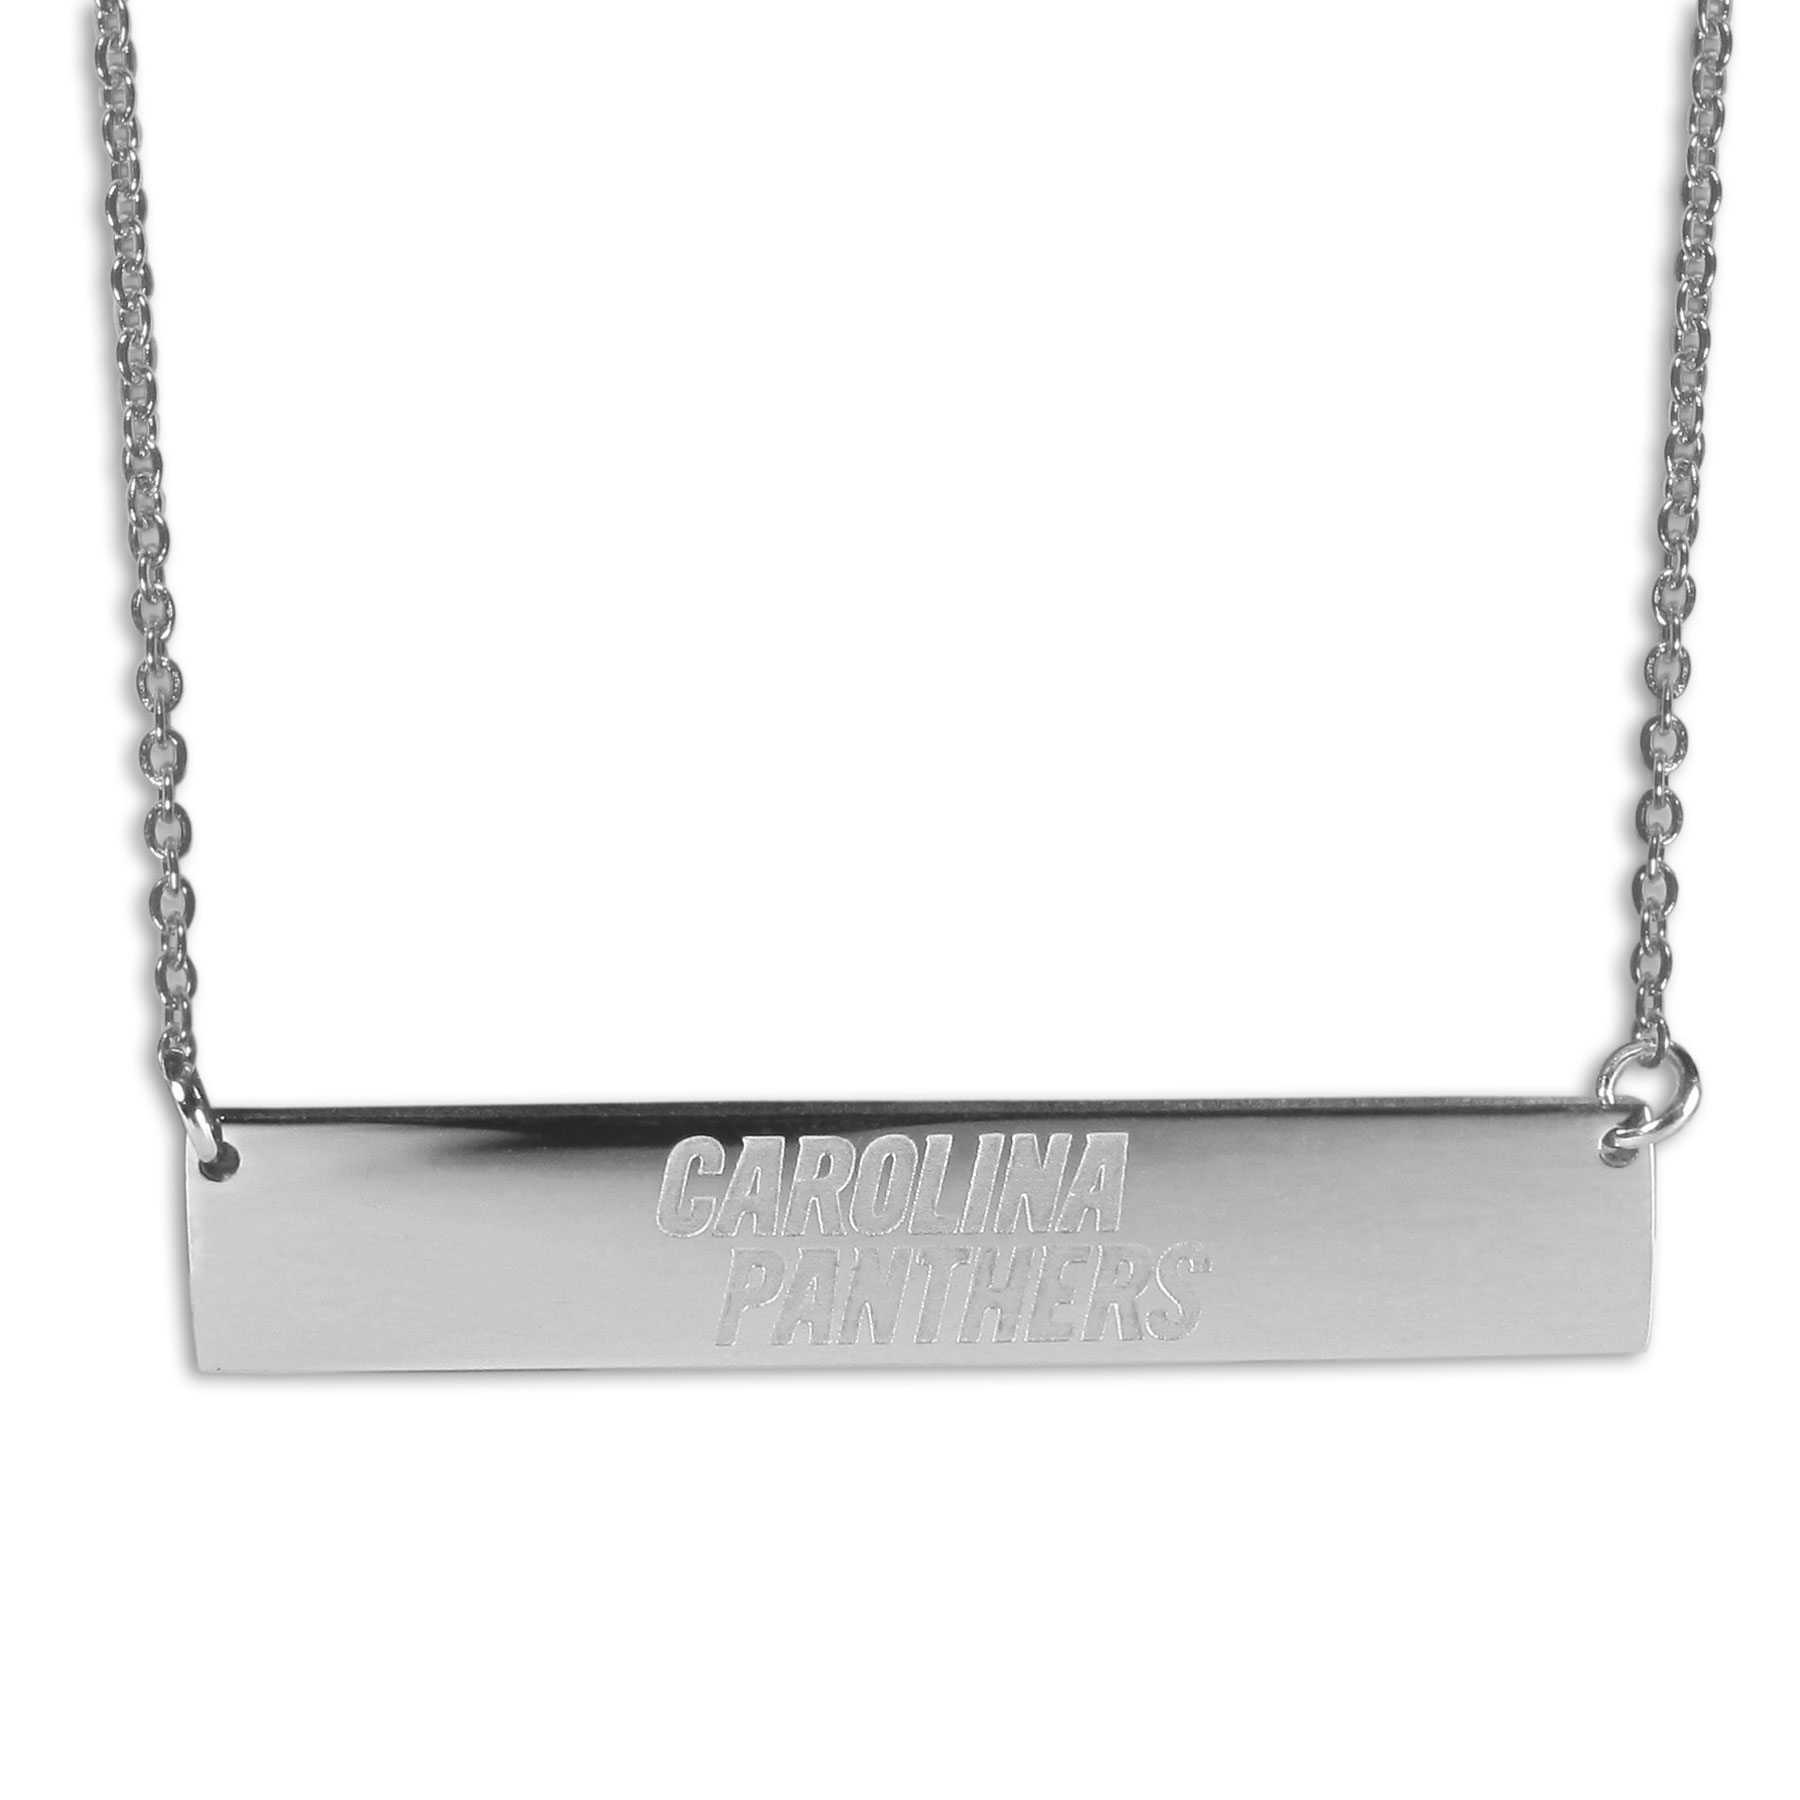 Carolina Panthers Bar Necklace - Simply beautiful Carolina Panthers bar necklace on a 20 inch link chain with 2 inch adjustable extender. This light-weight bar necklace has a stylish silver colored finish with the team name expertly etched on the 1.5 inch bar. Every female  fan will enjoy this contempory fashion accessory.